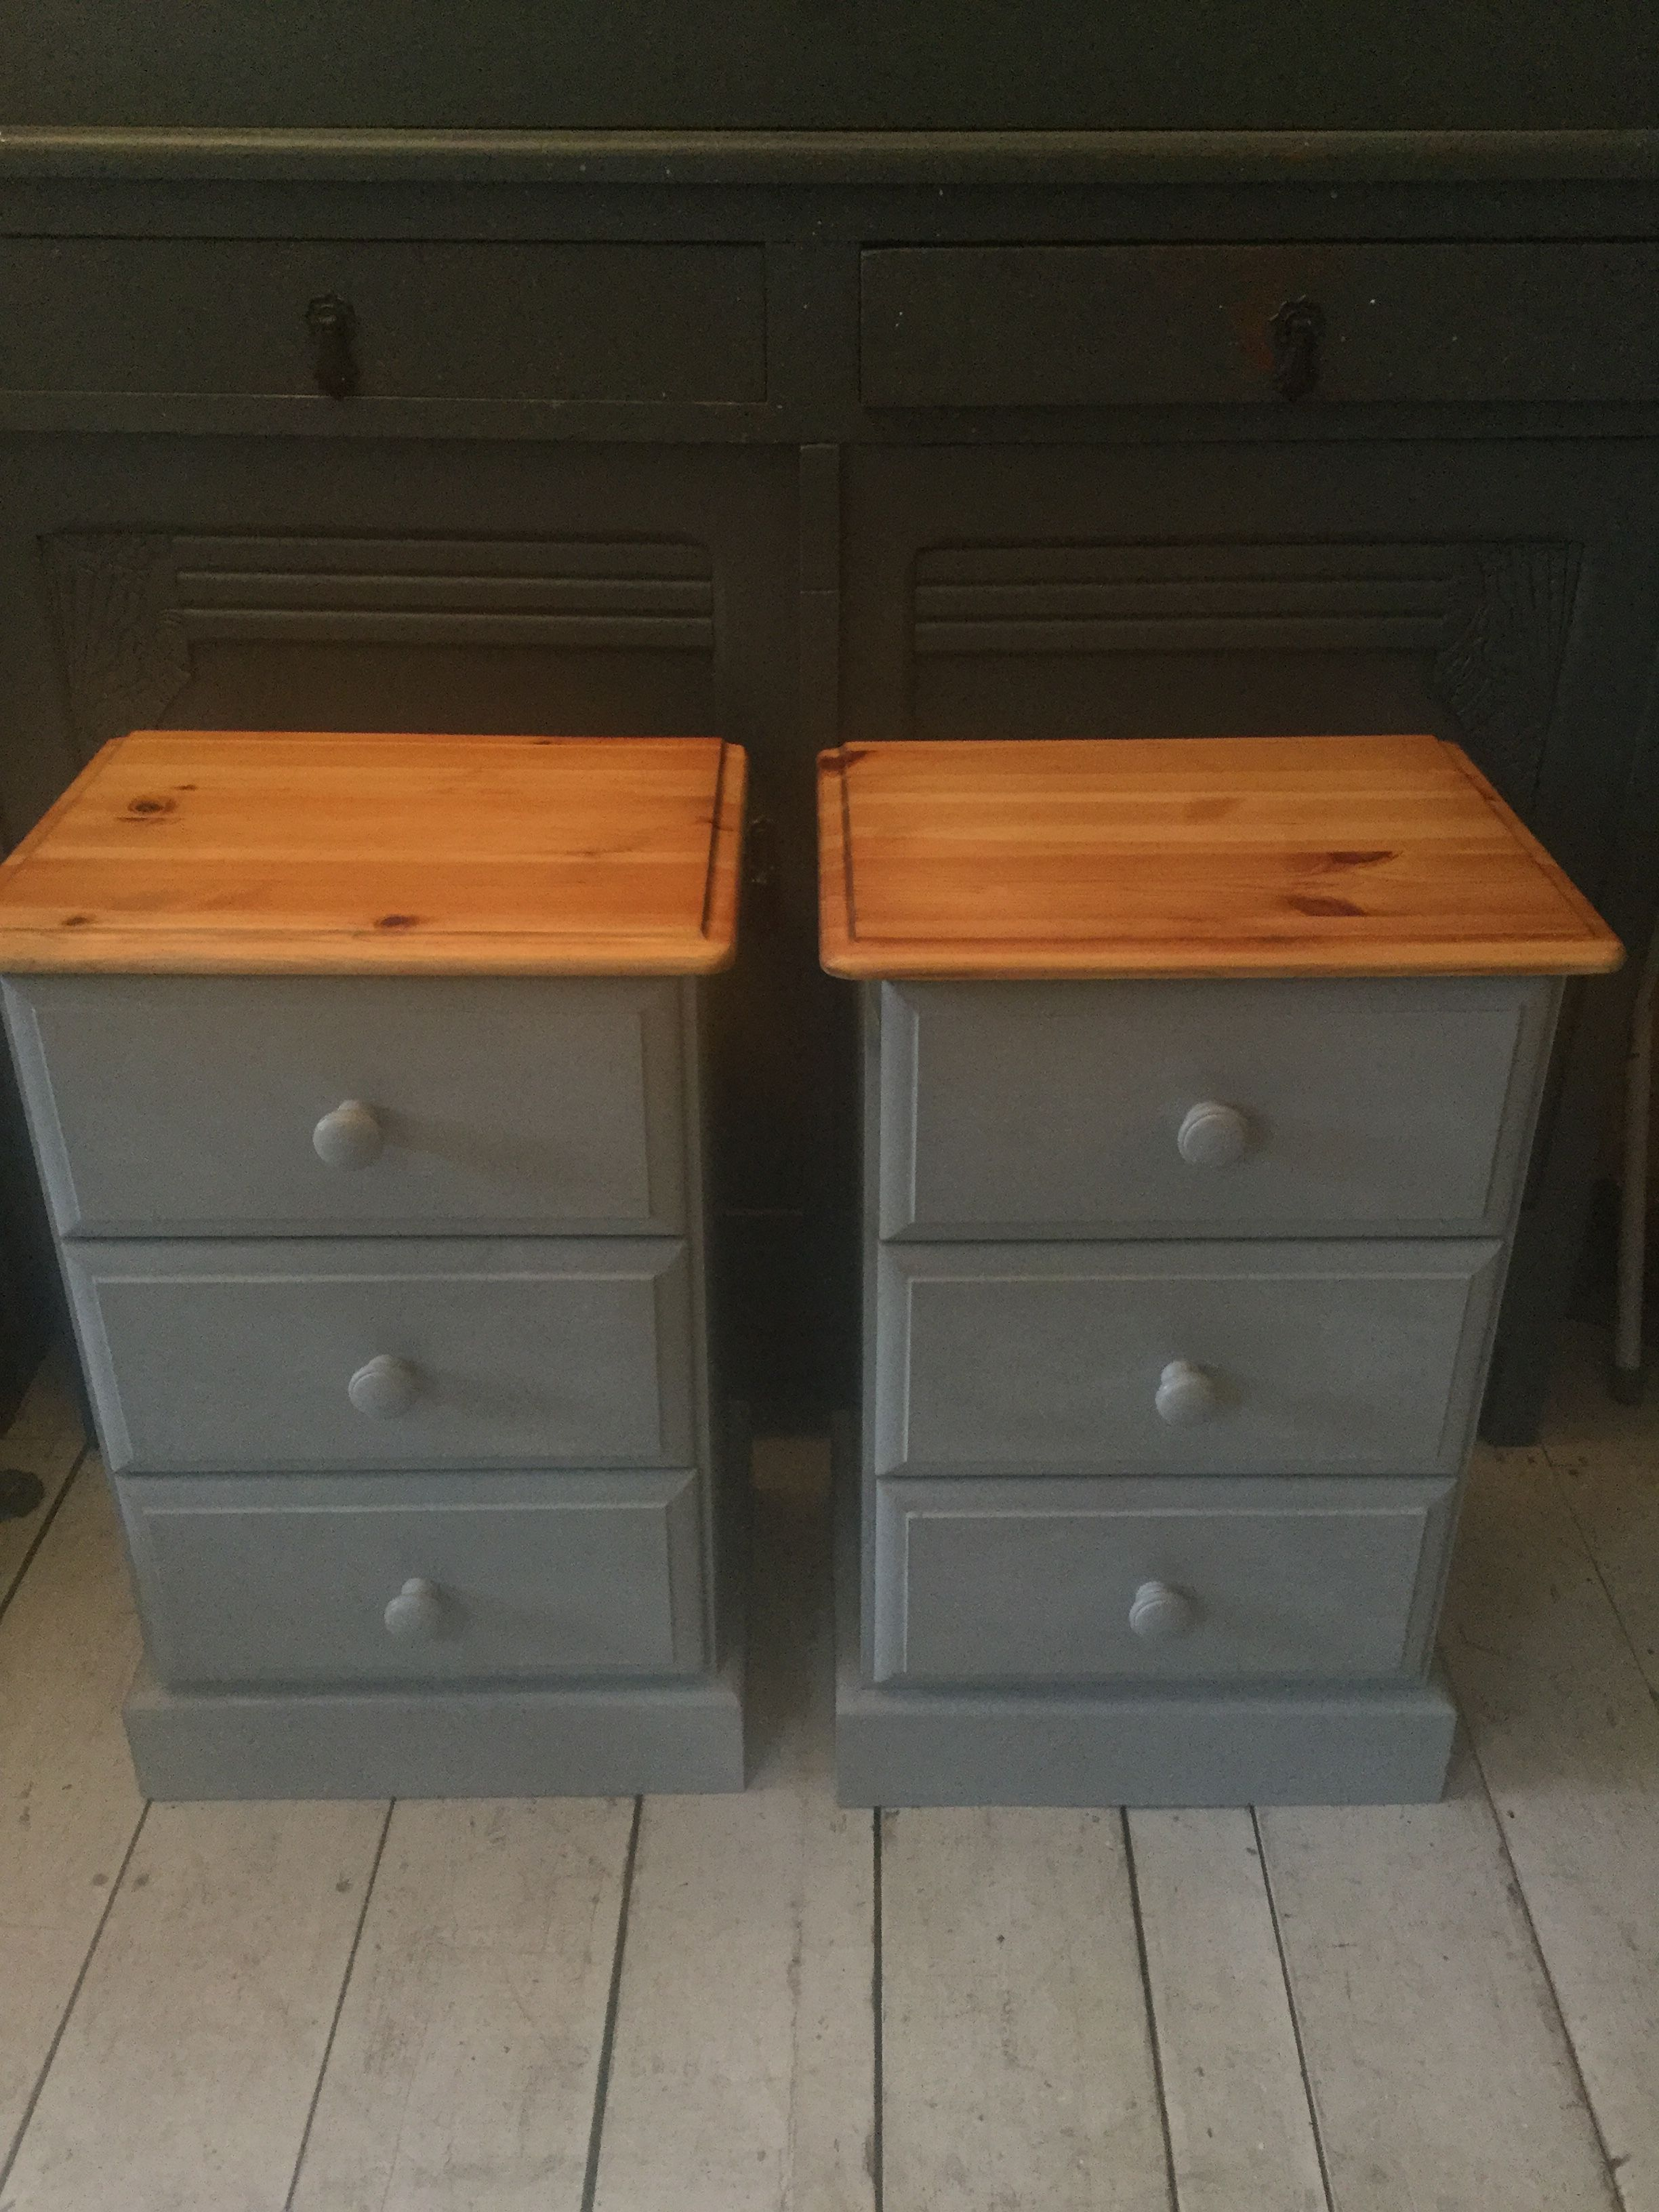 Pair Of Orange Pine Bedside Drawers Given A Makeover Tops Have Been Sanded And Oiled Bo Pine Furniture Makeover Furniture Makeover Bedroom Furniture Makeover